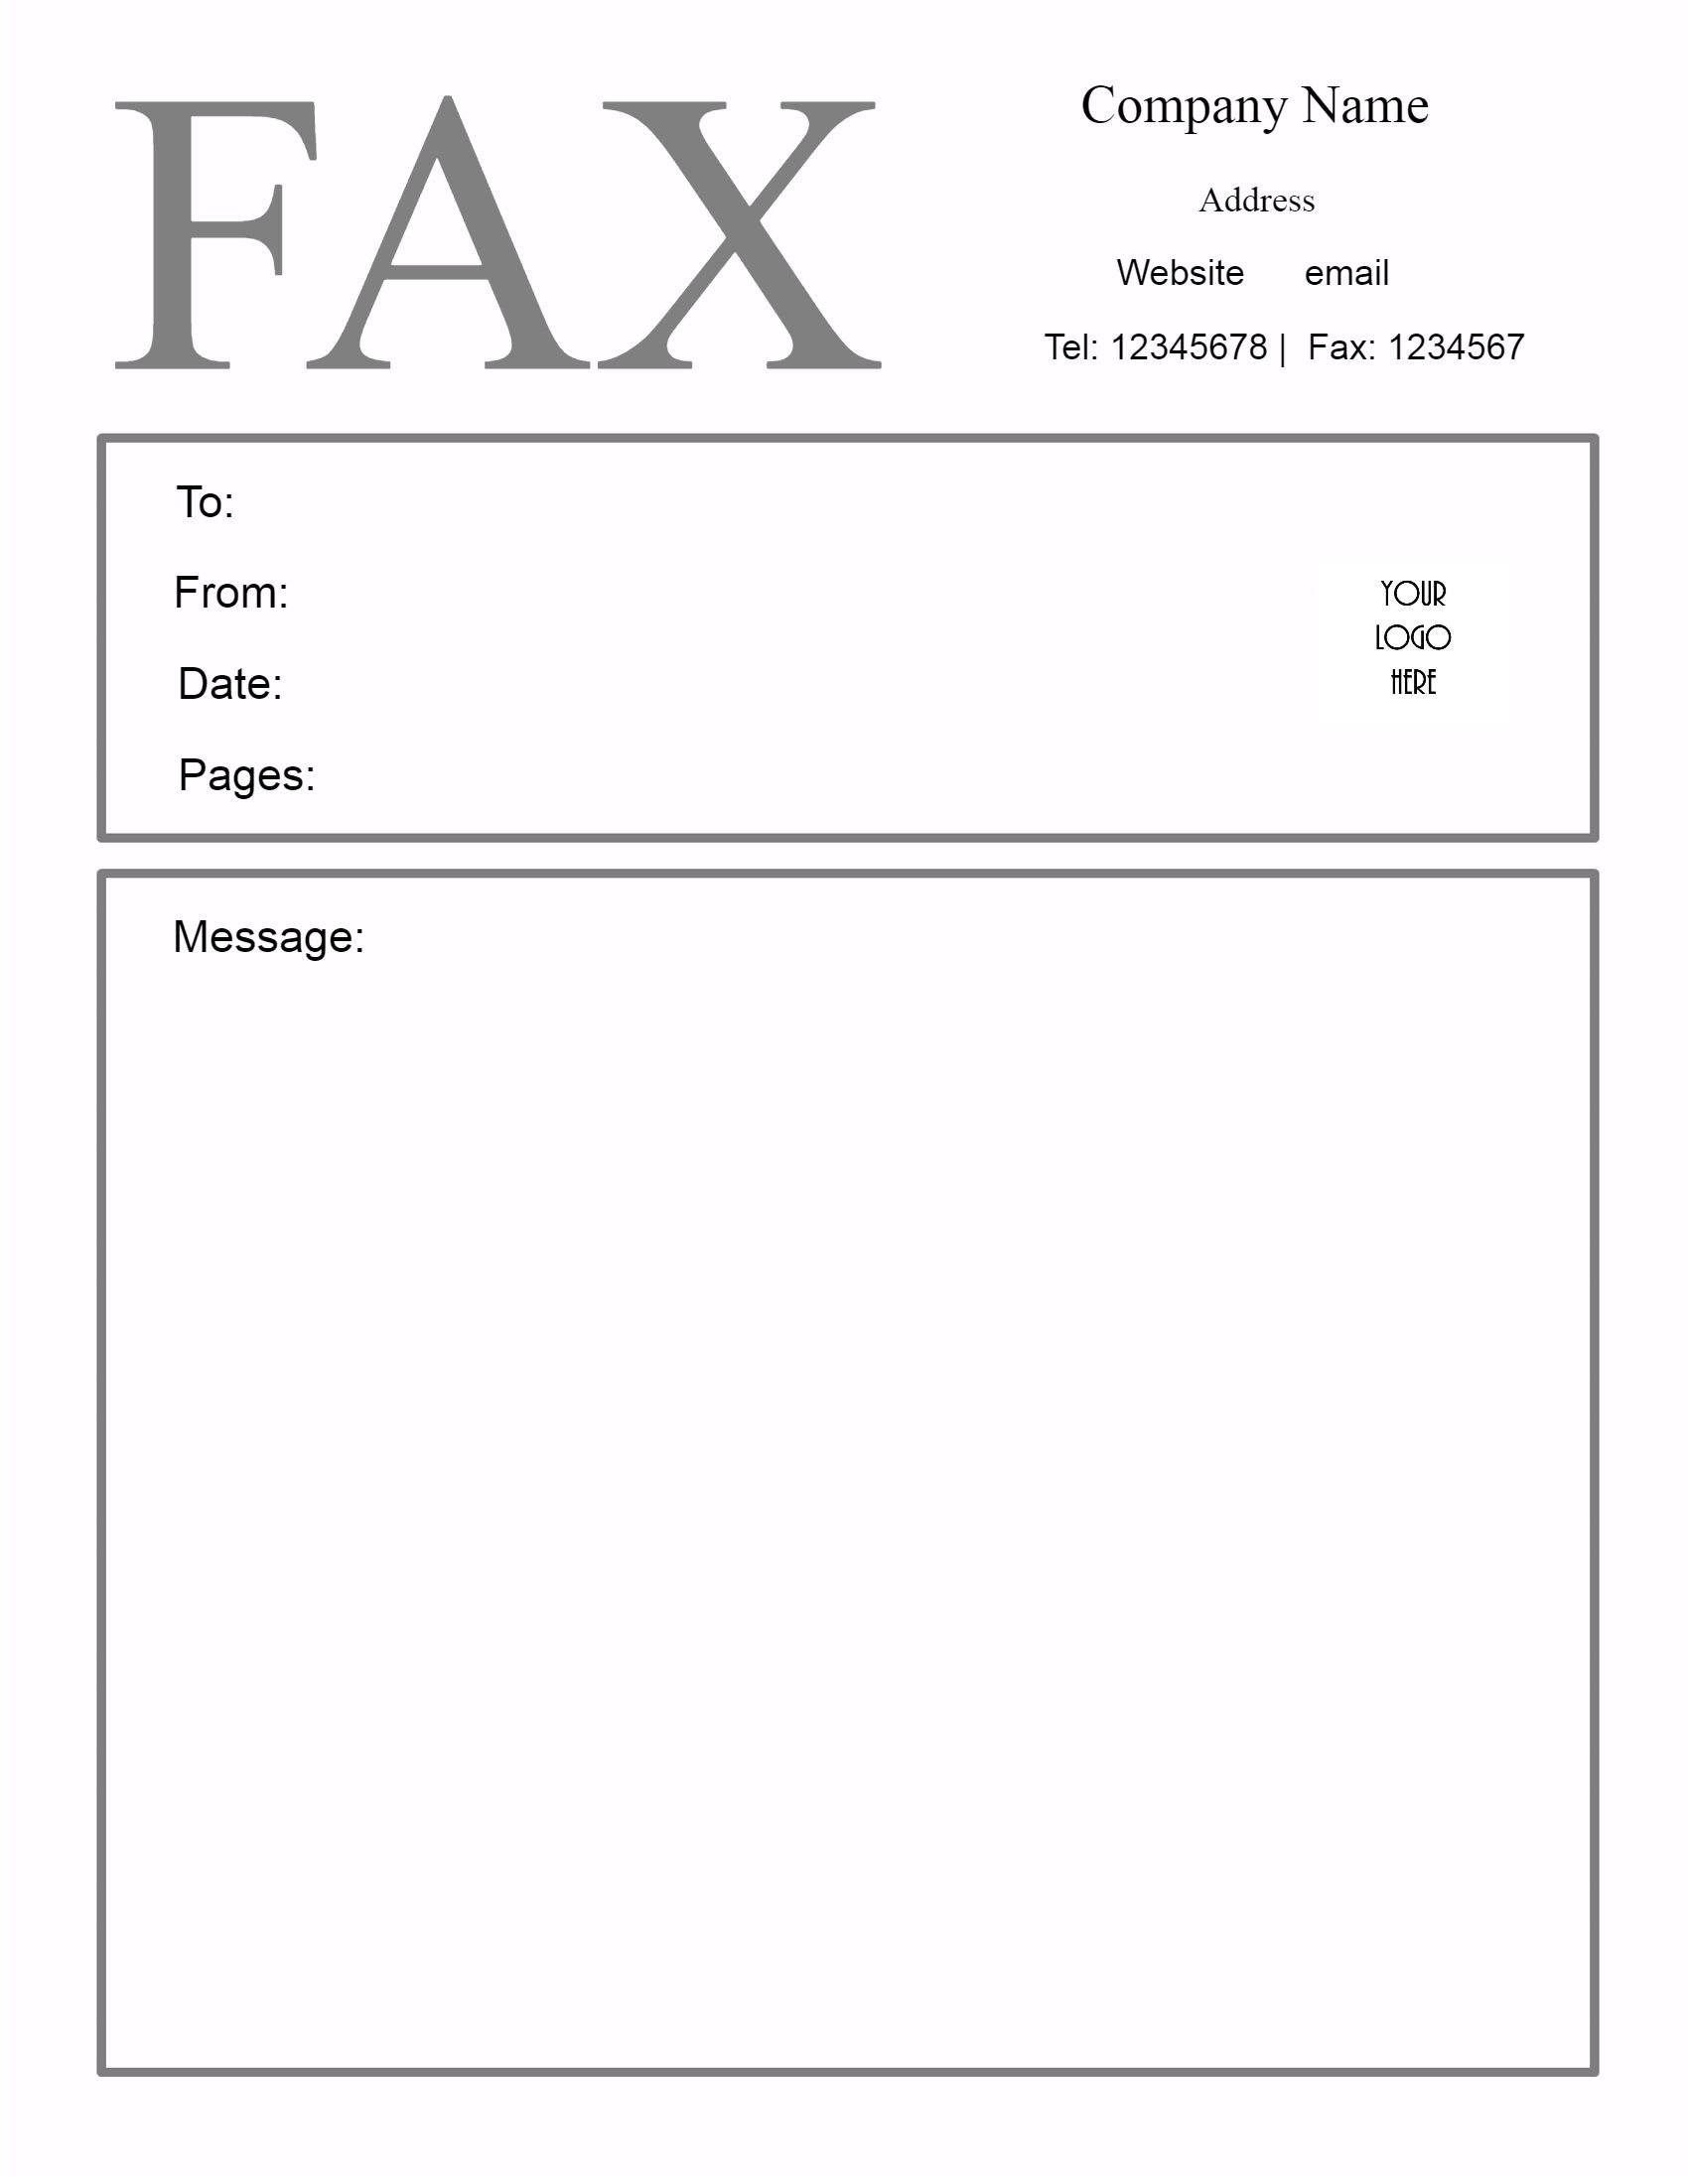 Free Fax Cover Sheet Template | Customize Online Then Print - Free Printable Fax Cover Page